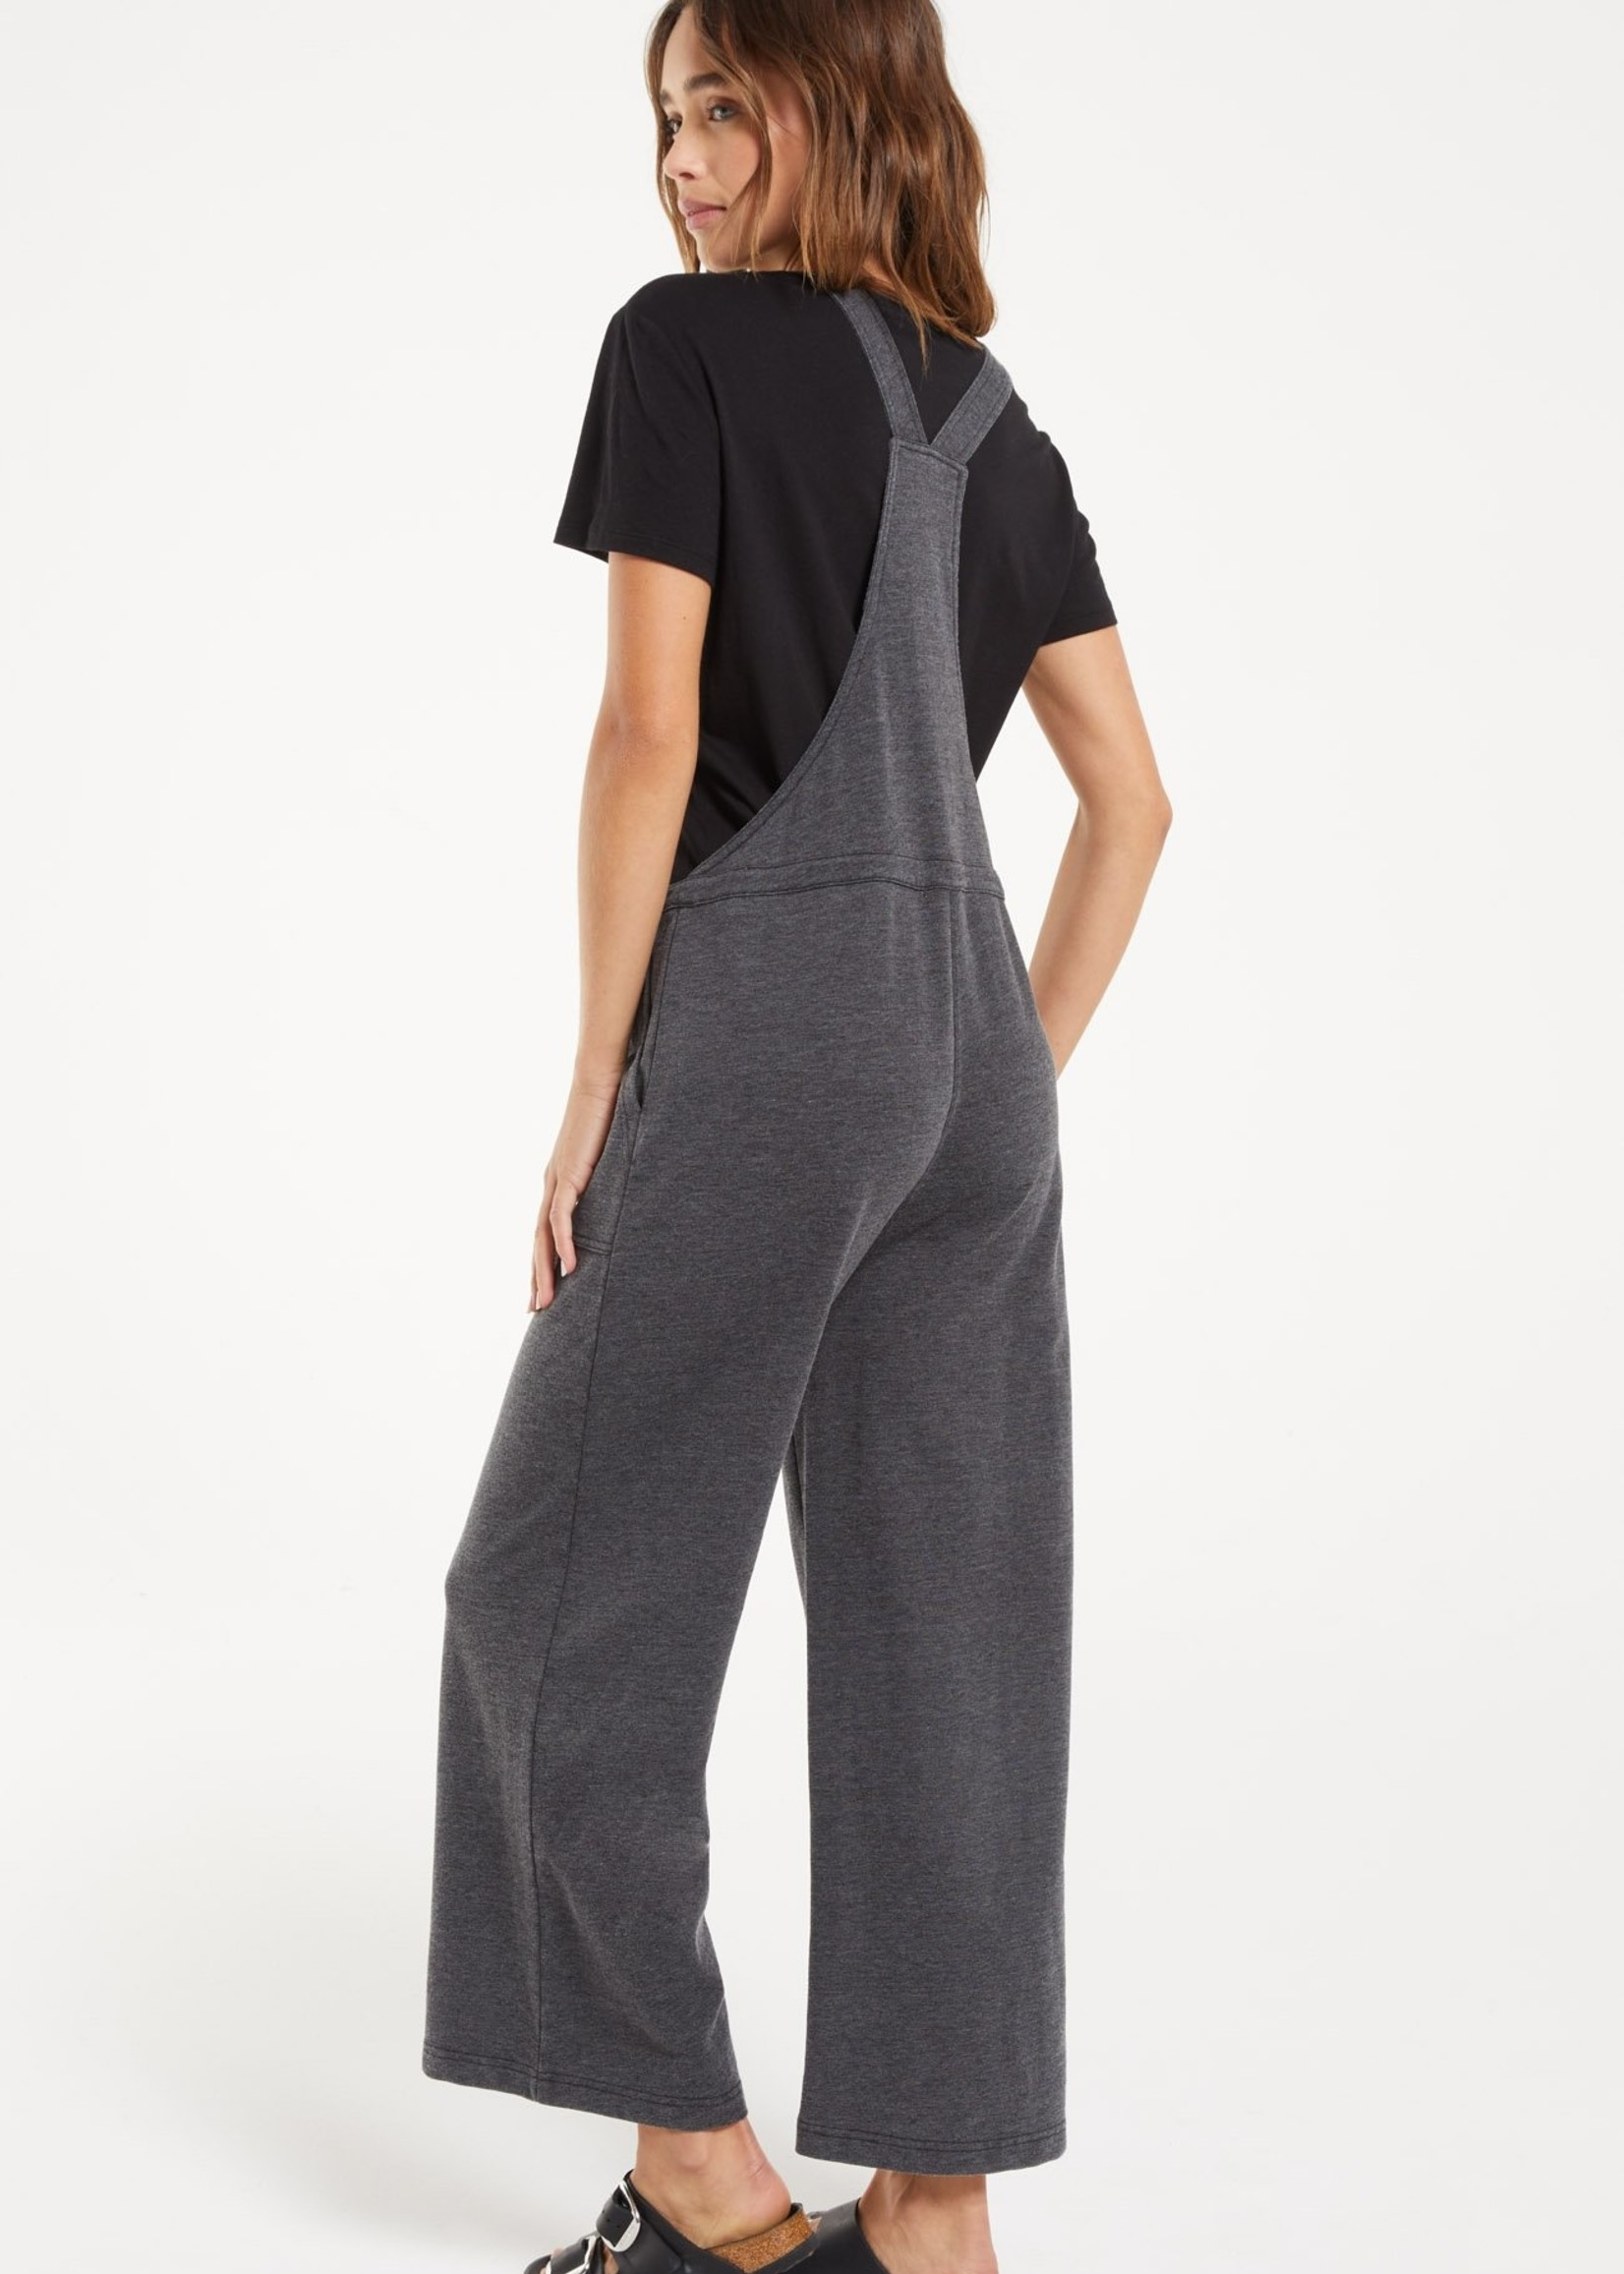 Z Supply Z Supply Cinched Waist Overalls